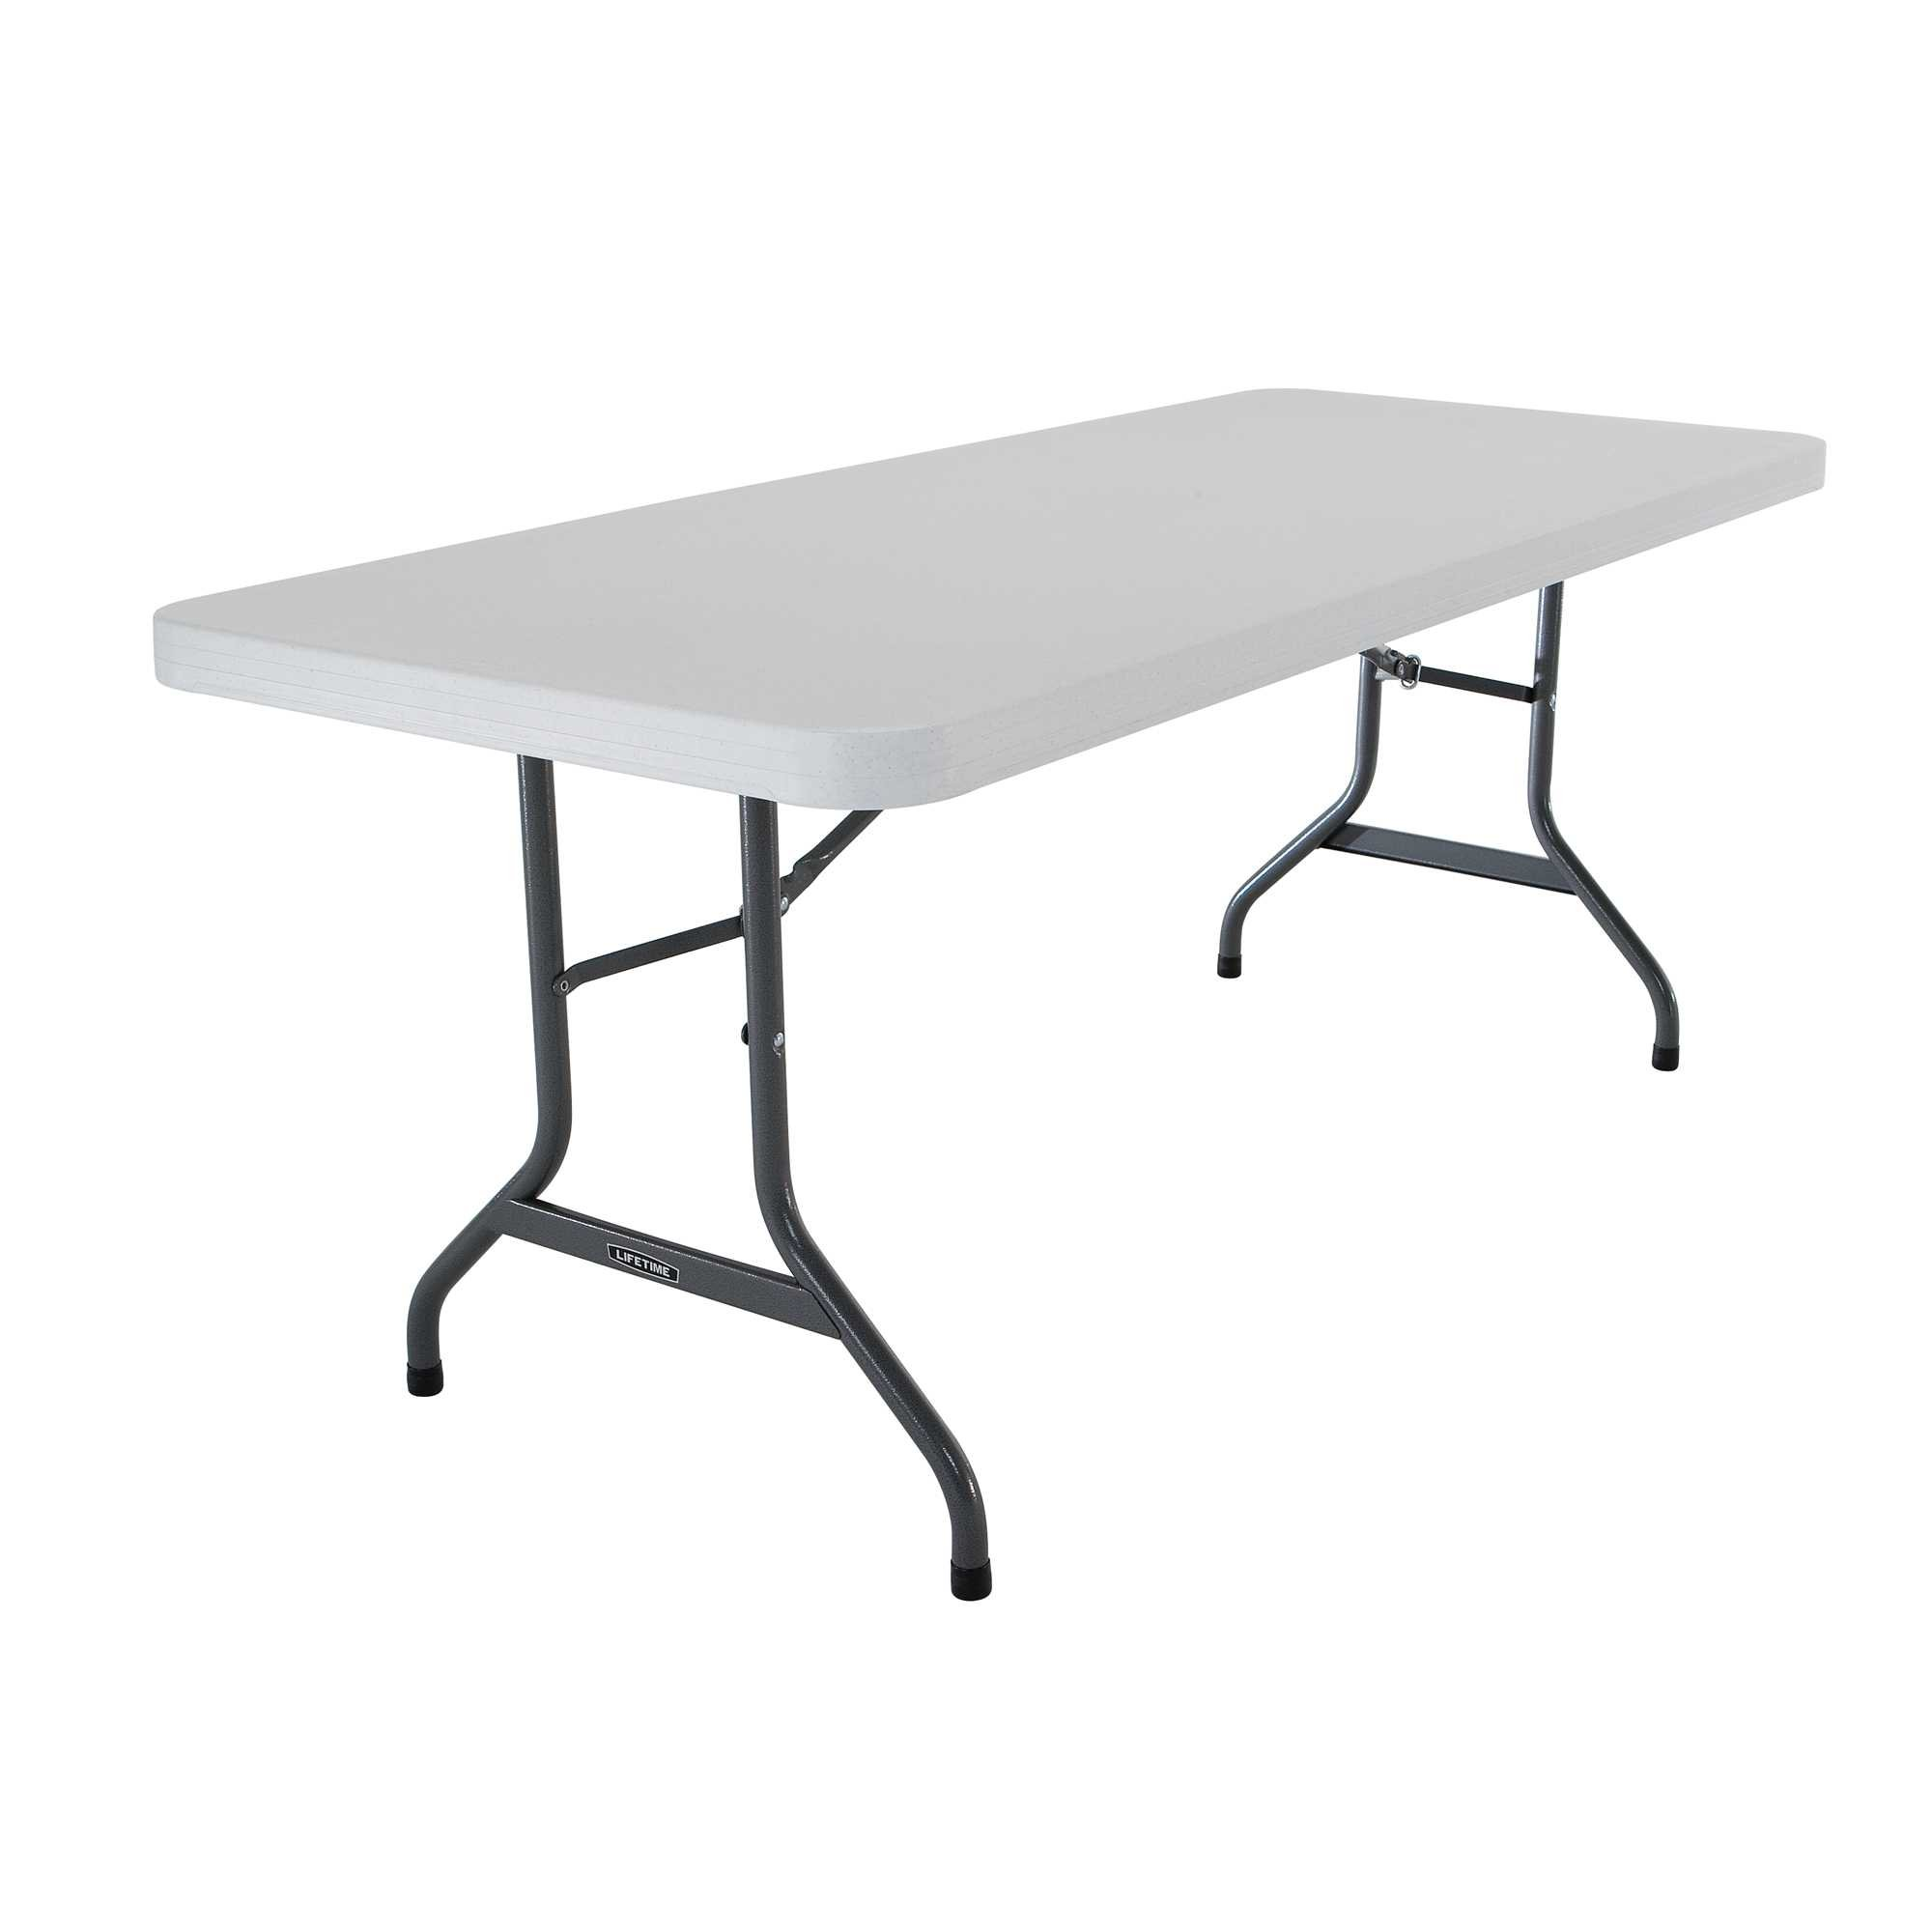 Lifetime 22901 Folding Utility Table, 6 Feet, White Granite